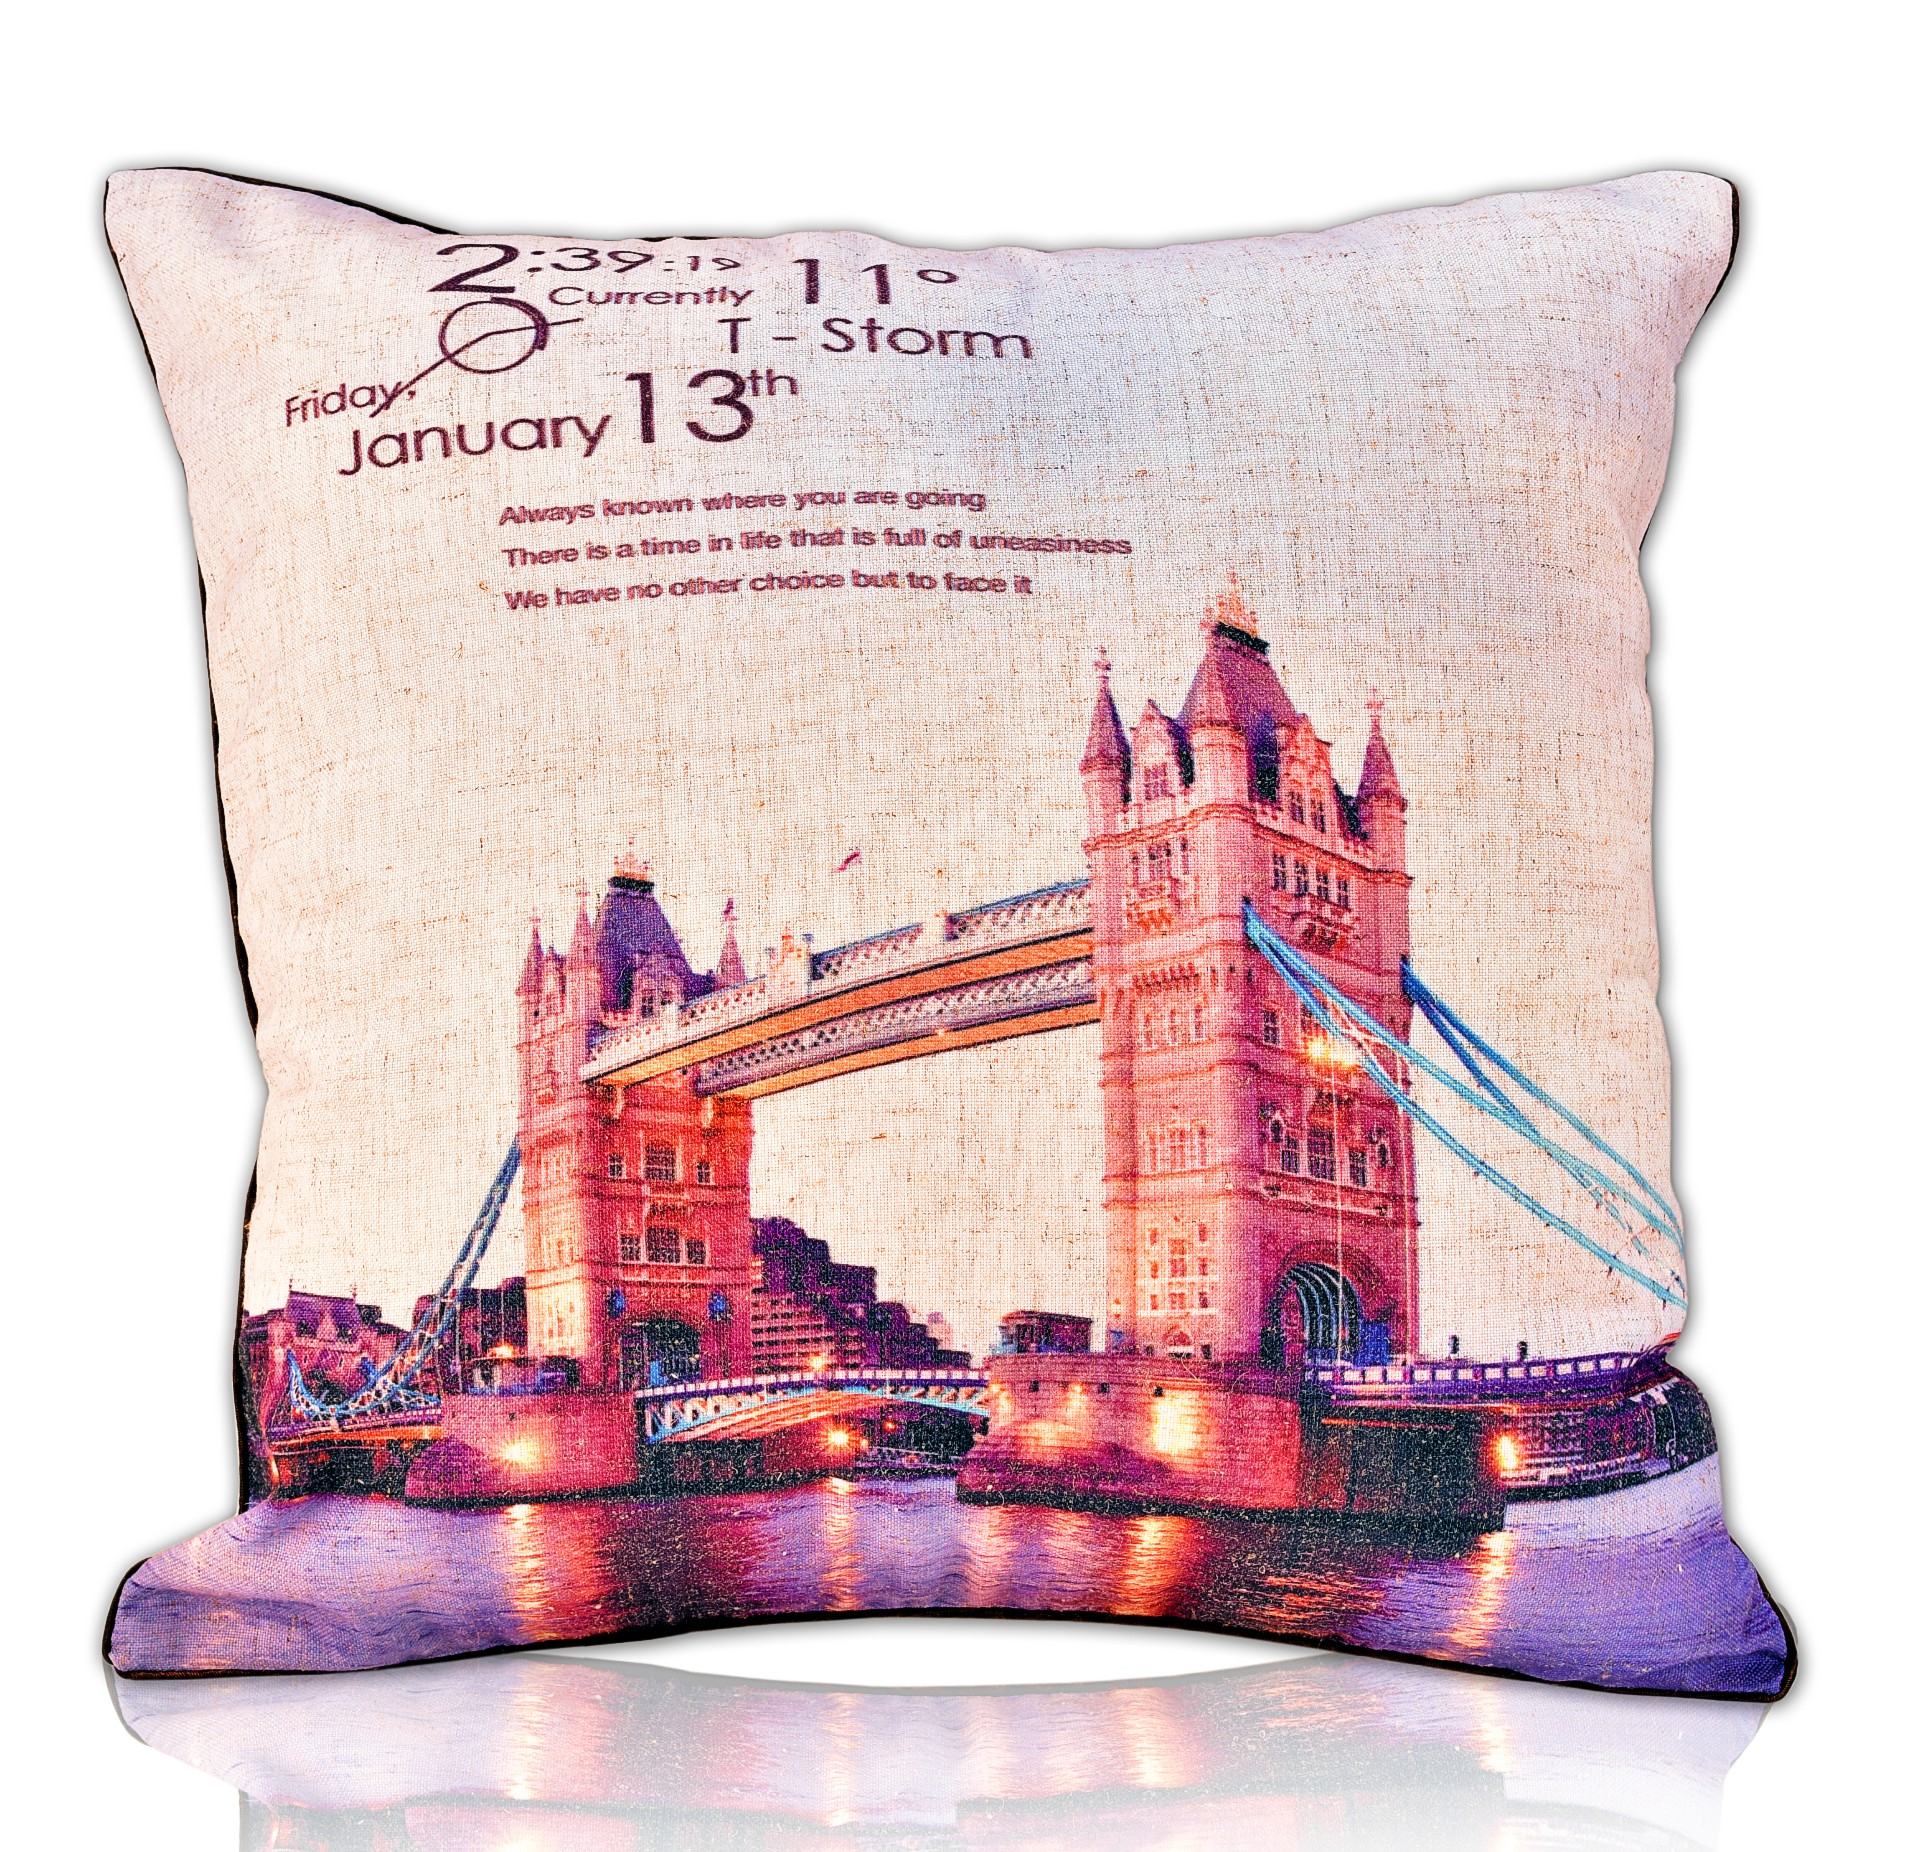 Polycotton Cushion CoverCushion Cover